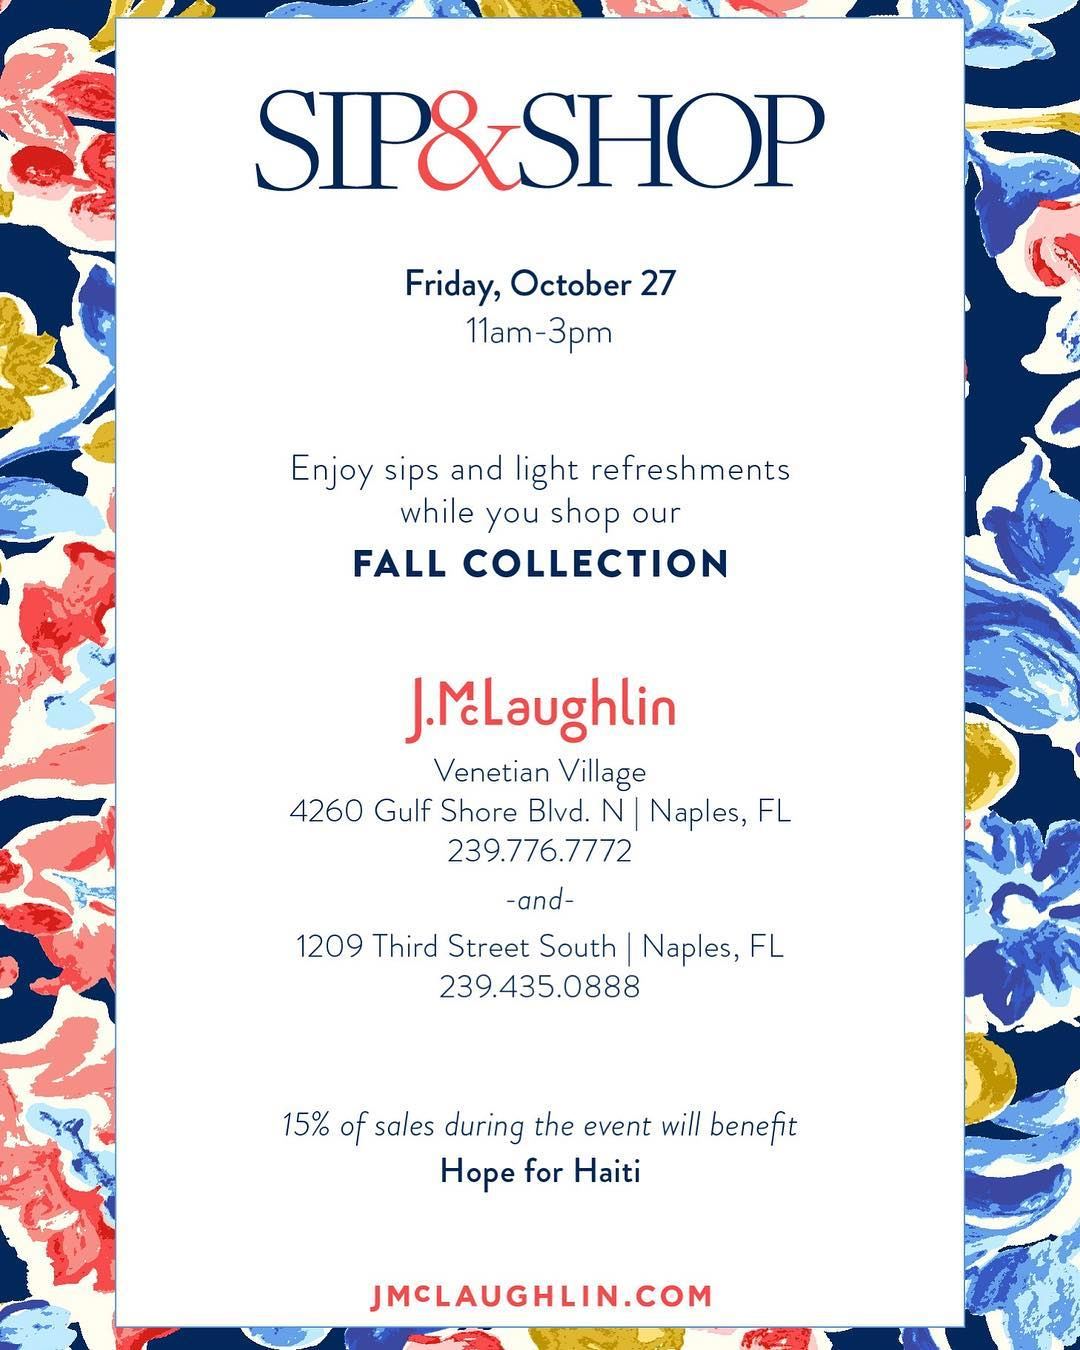 Come #sip&shop with j.mclaughlin in naples, florida on friday, october 27. they are generously donating 15% of sales during the event to us!